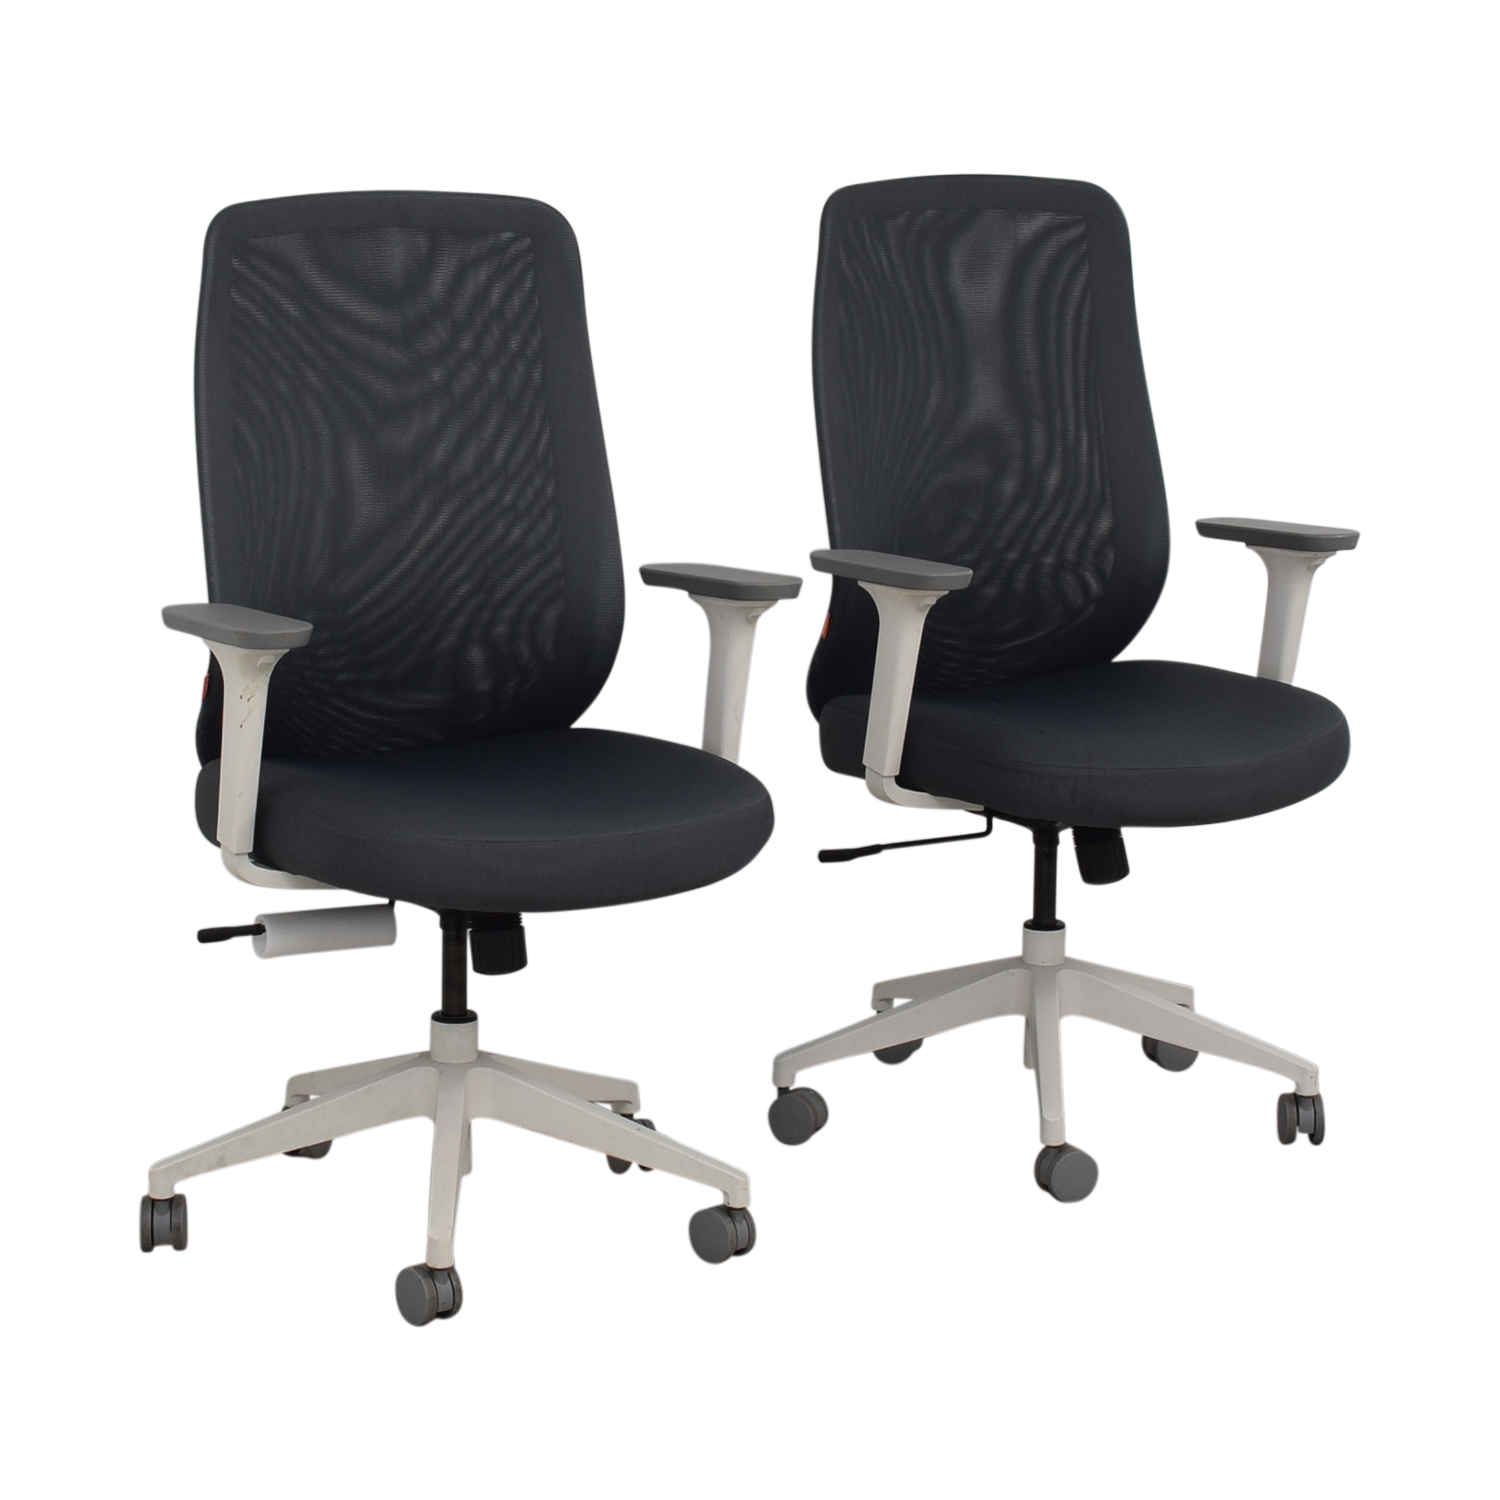 Poppin Poppin Gray Max Task Chairs Home Office Chairs